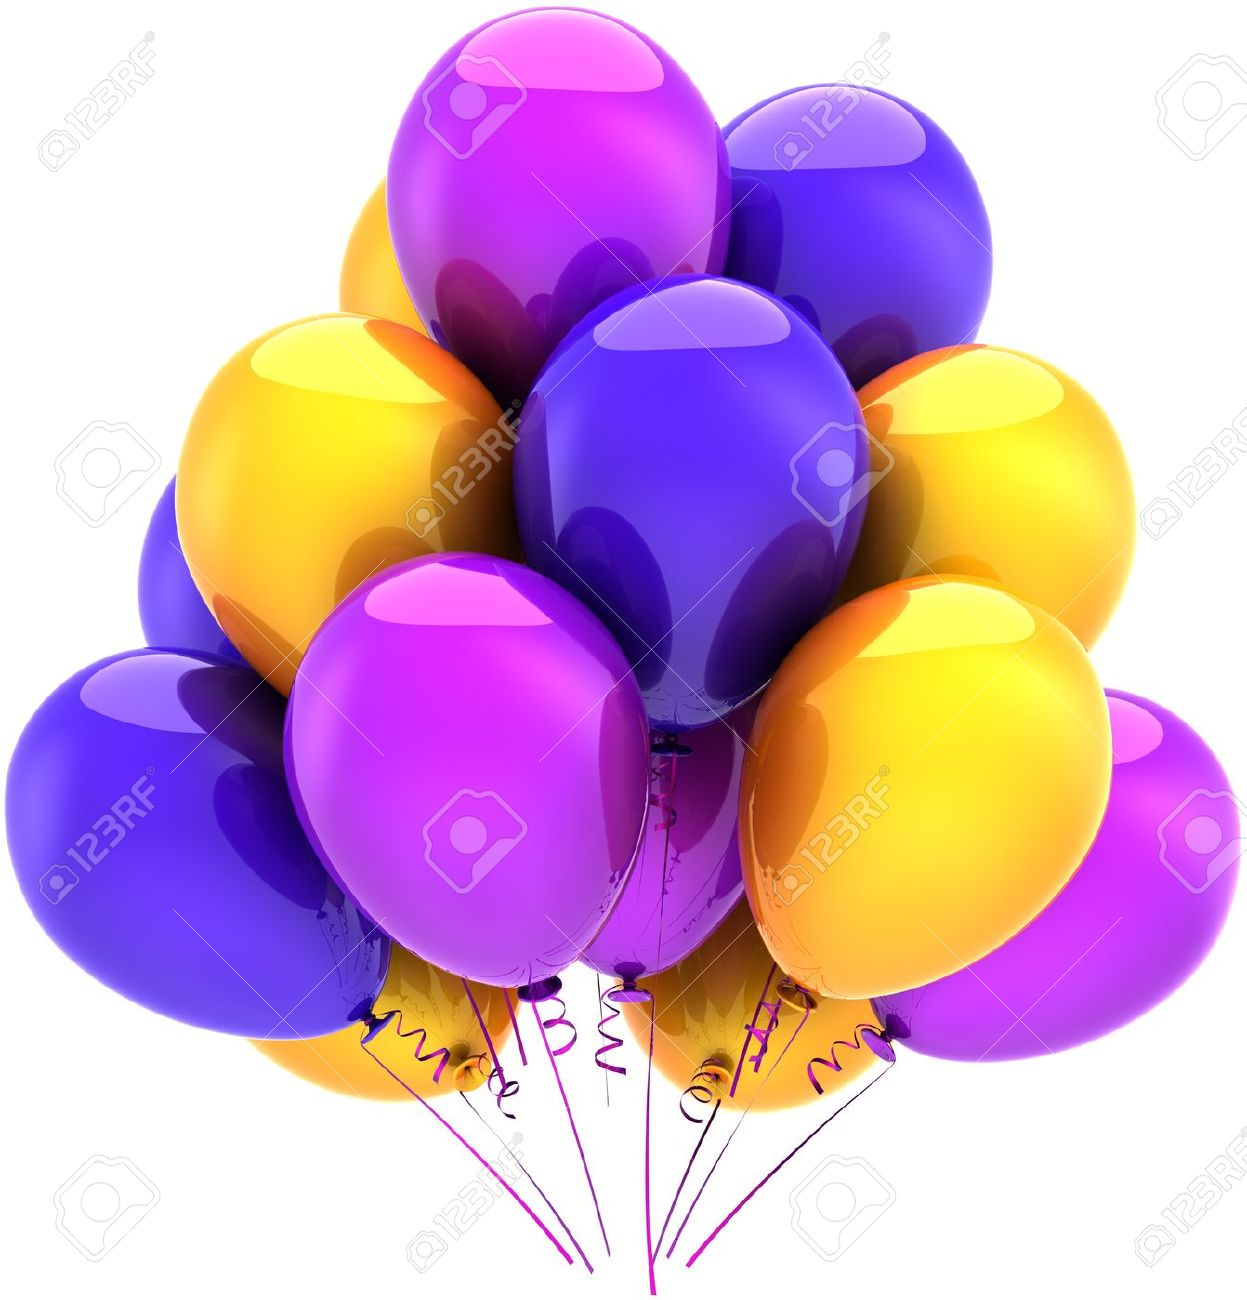 Balloons Birthday Party Multicolor Decoration Blue Purple Yellow.